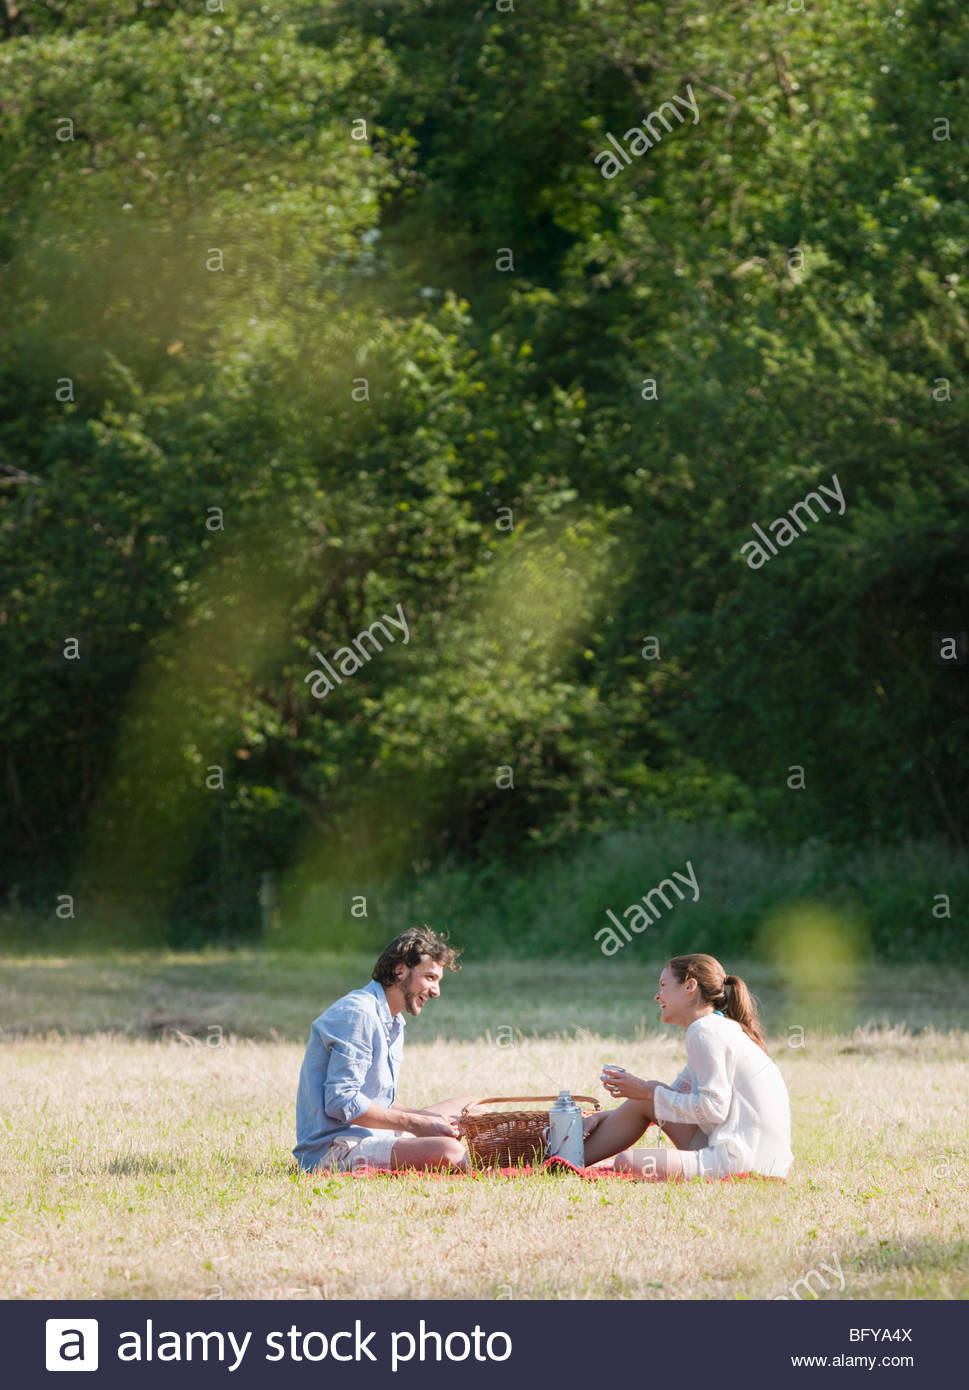 Couple having a picnic in countryside Banque D'Images